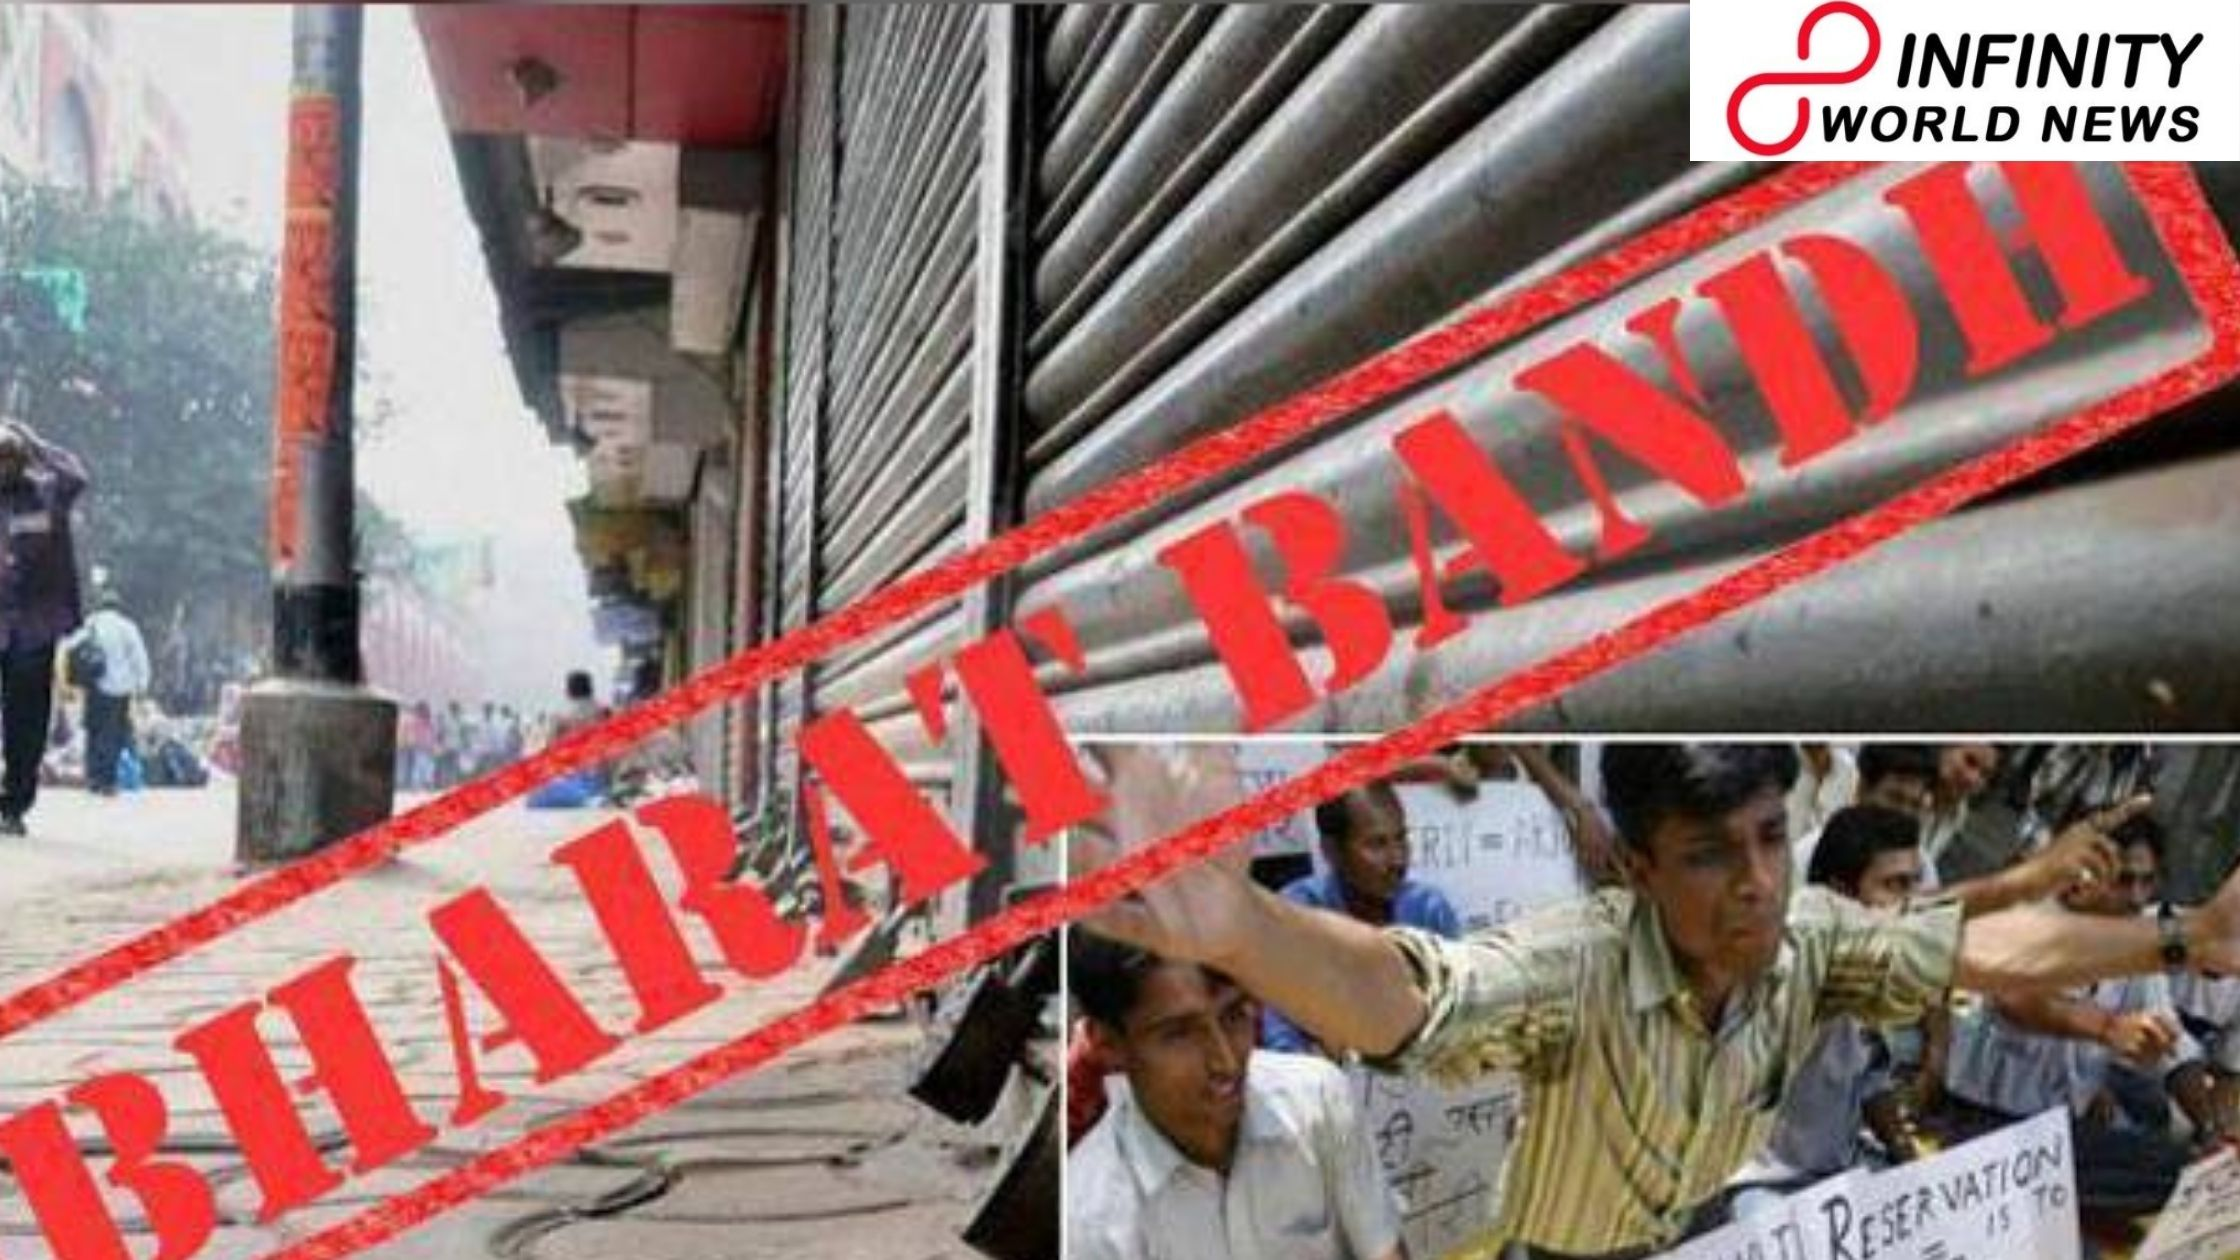 Bharat Bandh on February 26 2021: Over 8 Crore Traders to Objection Upon GST, Fuel Price Hike also E-Way Bill